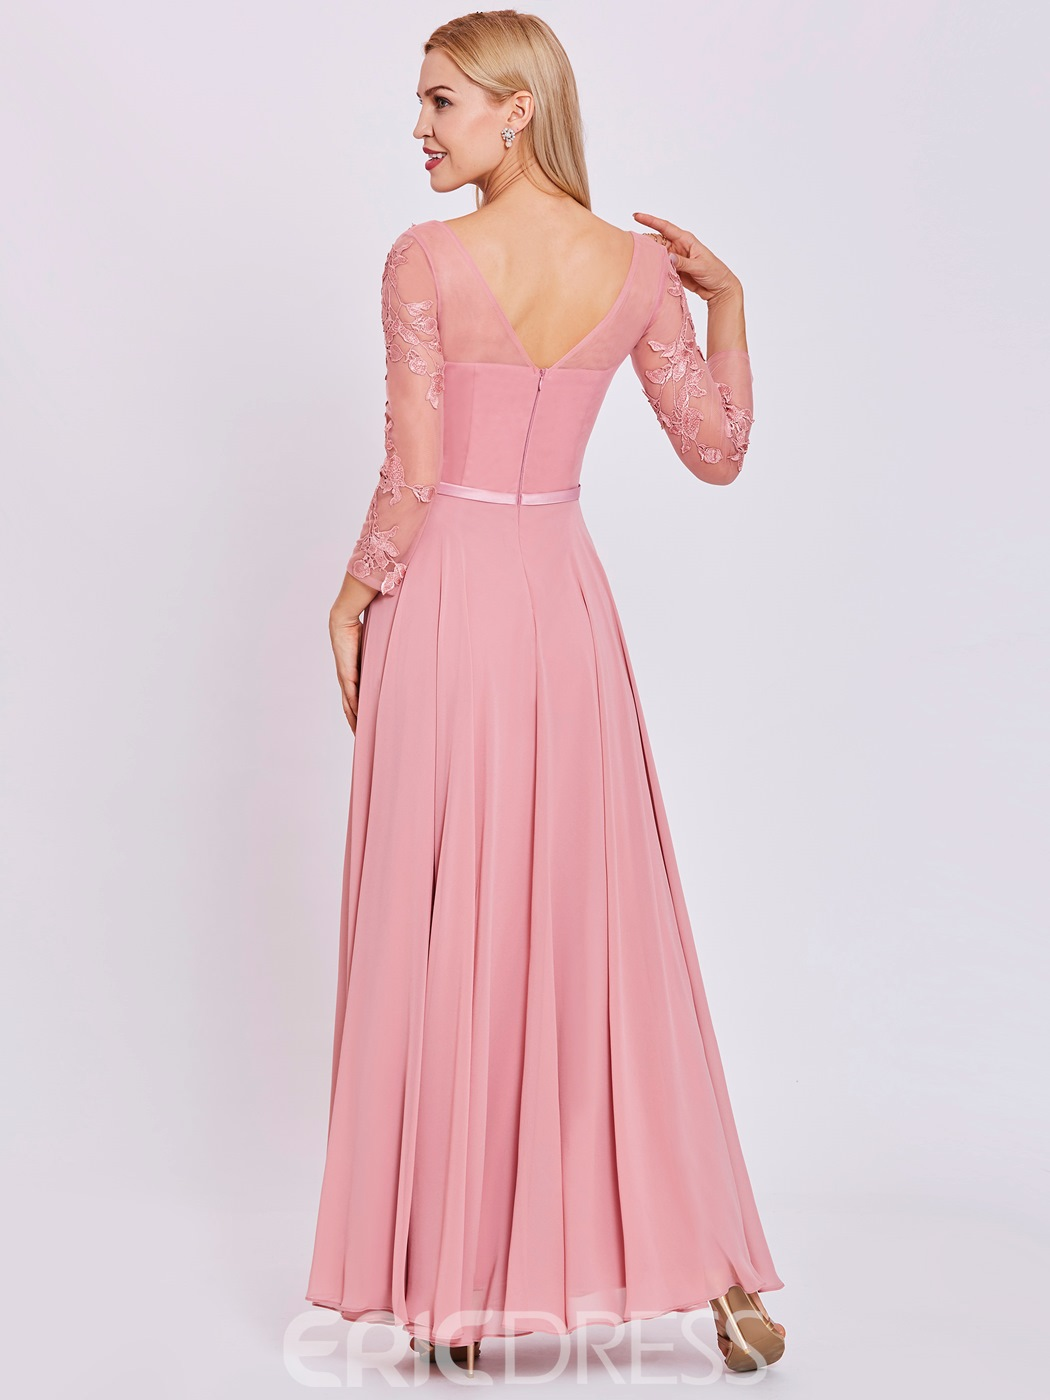 Ericdress V Neck Long Sleeves Appliques A Line Prom Dress